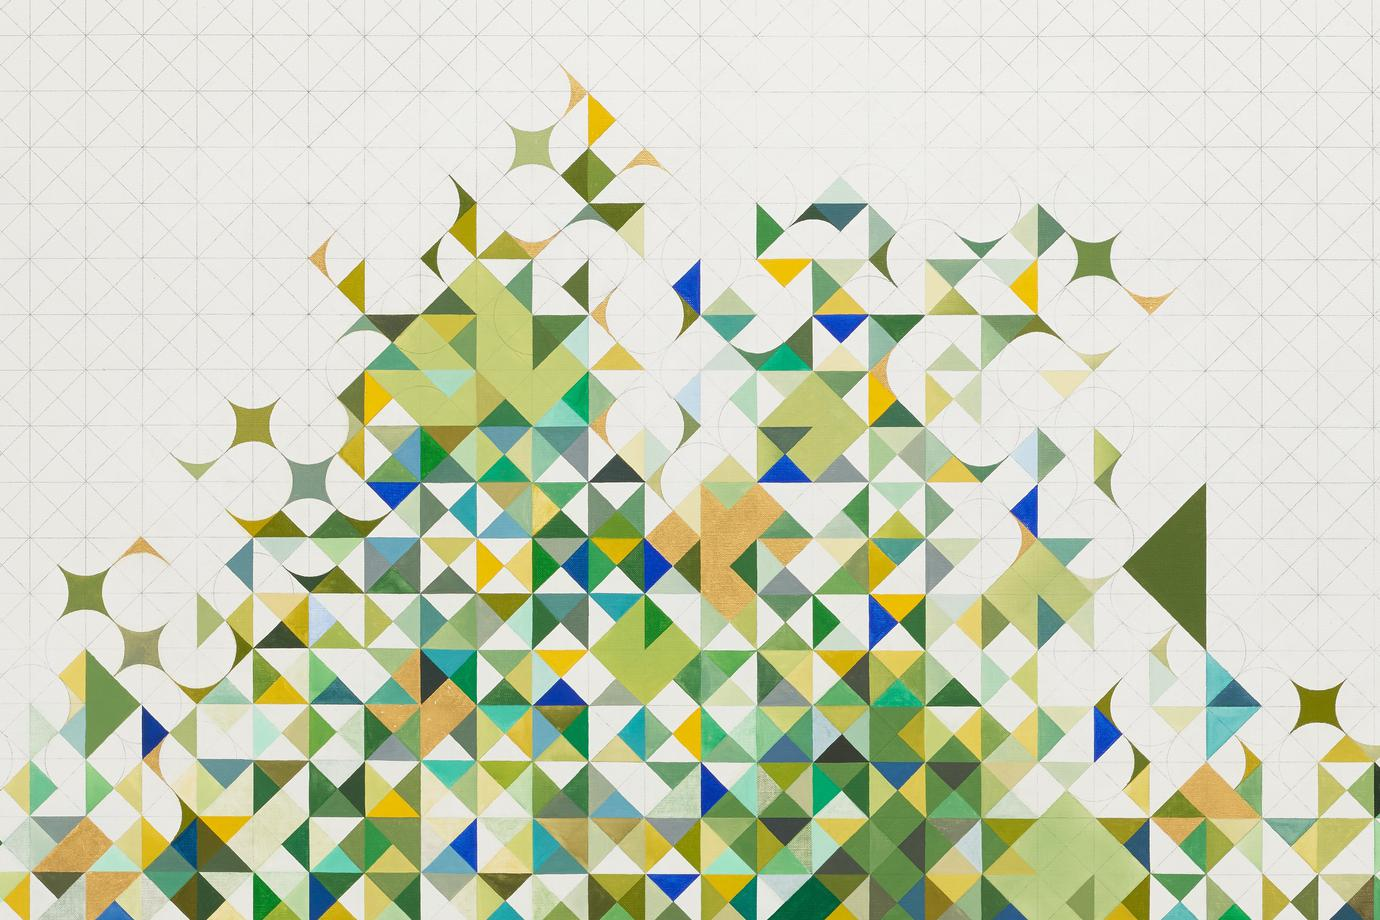 large, white canvas with crisscrossing pencil grid lines; abstract, quilt-like motif following gridlines at center of canvas, bursting into grid in greens, blue, yellow, and gold leaf